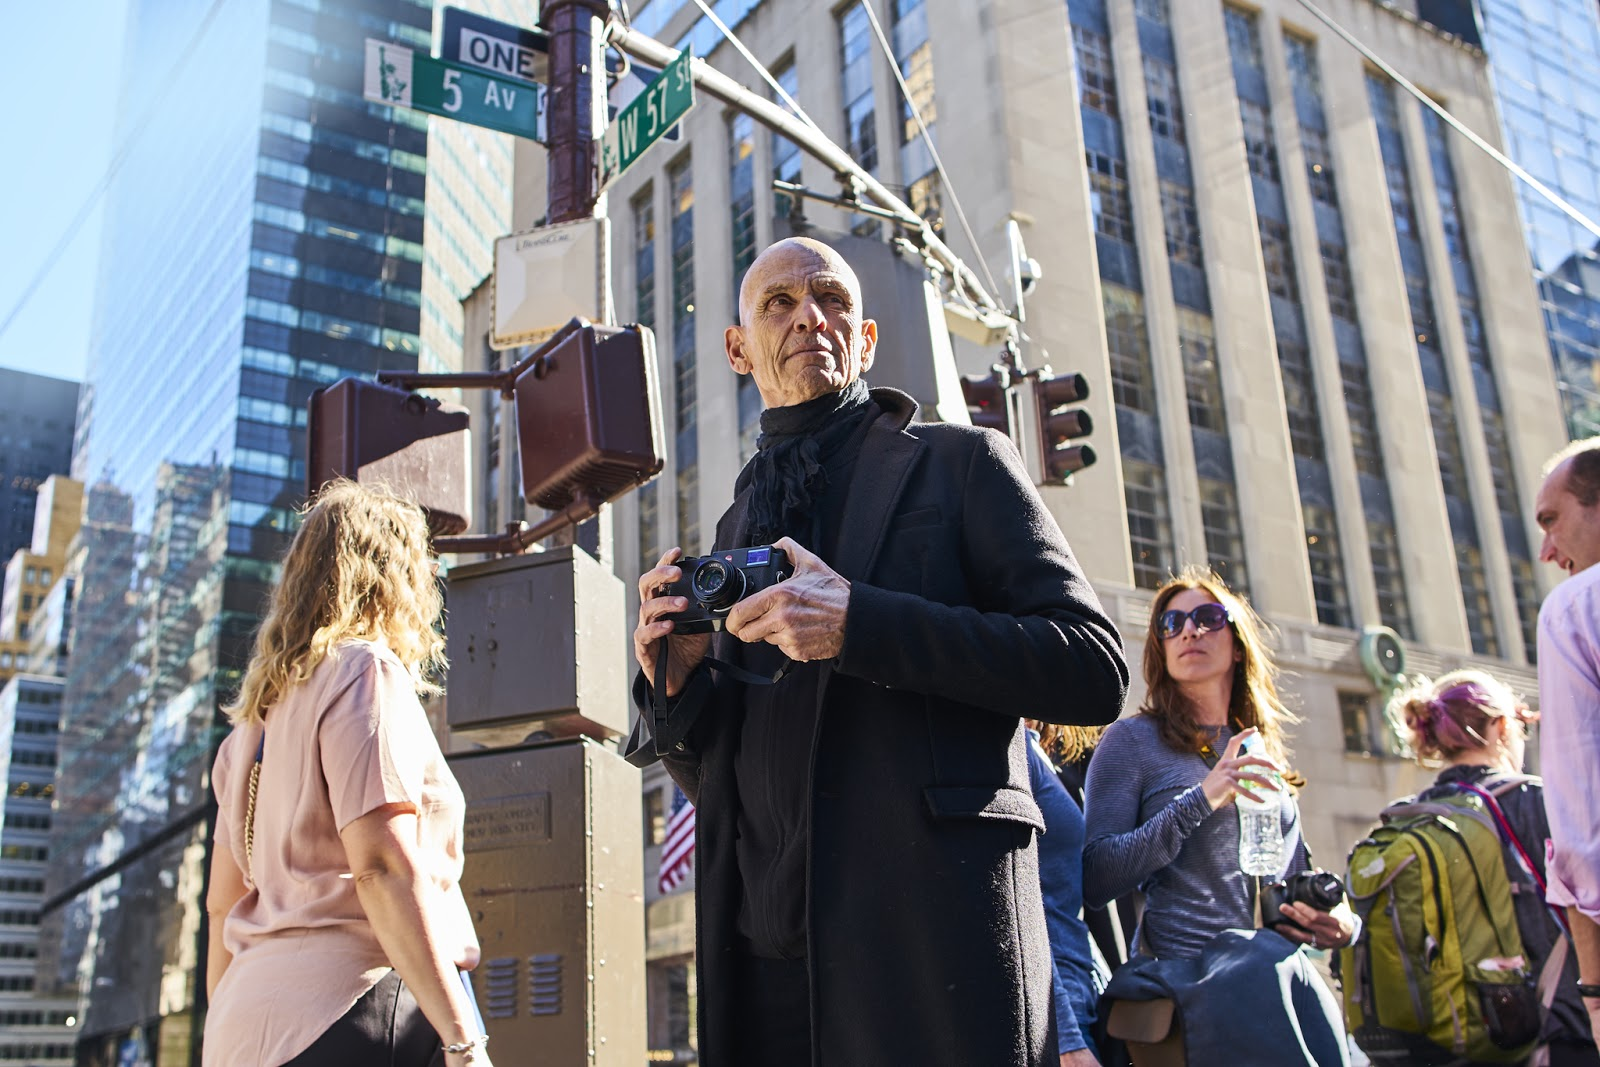 Take An Online Photography Master Class With Joel Meyerowitz